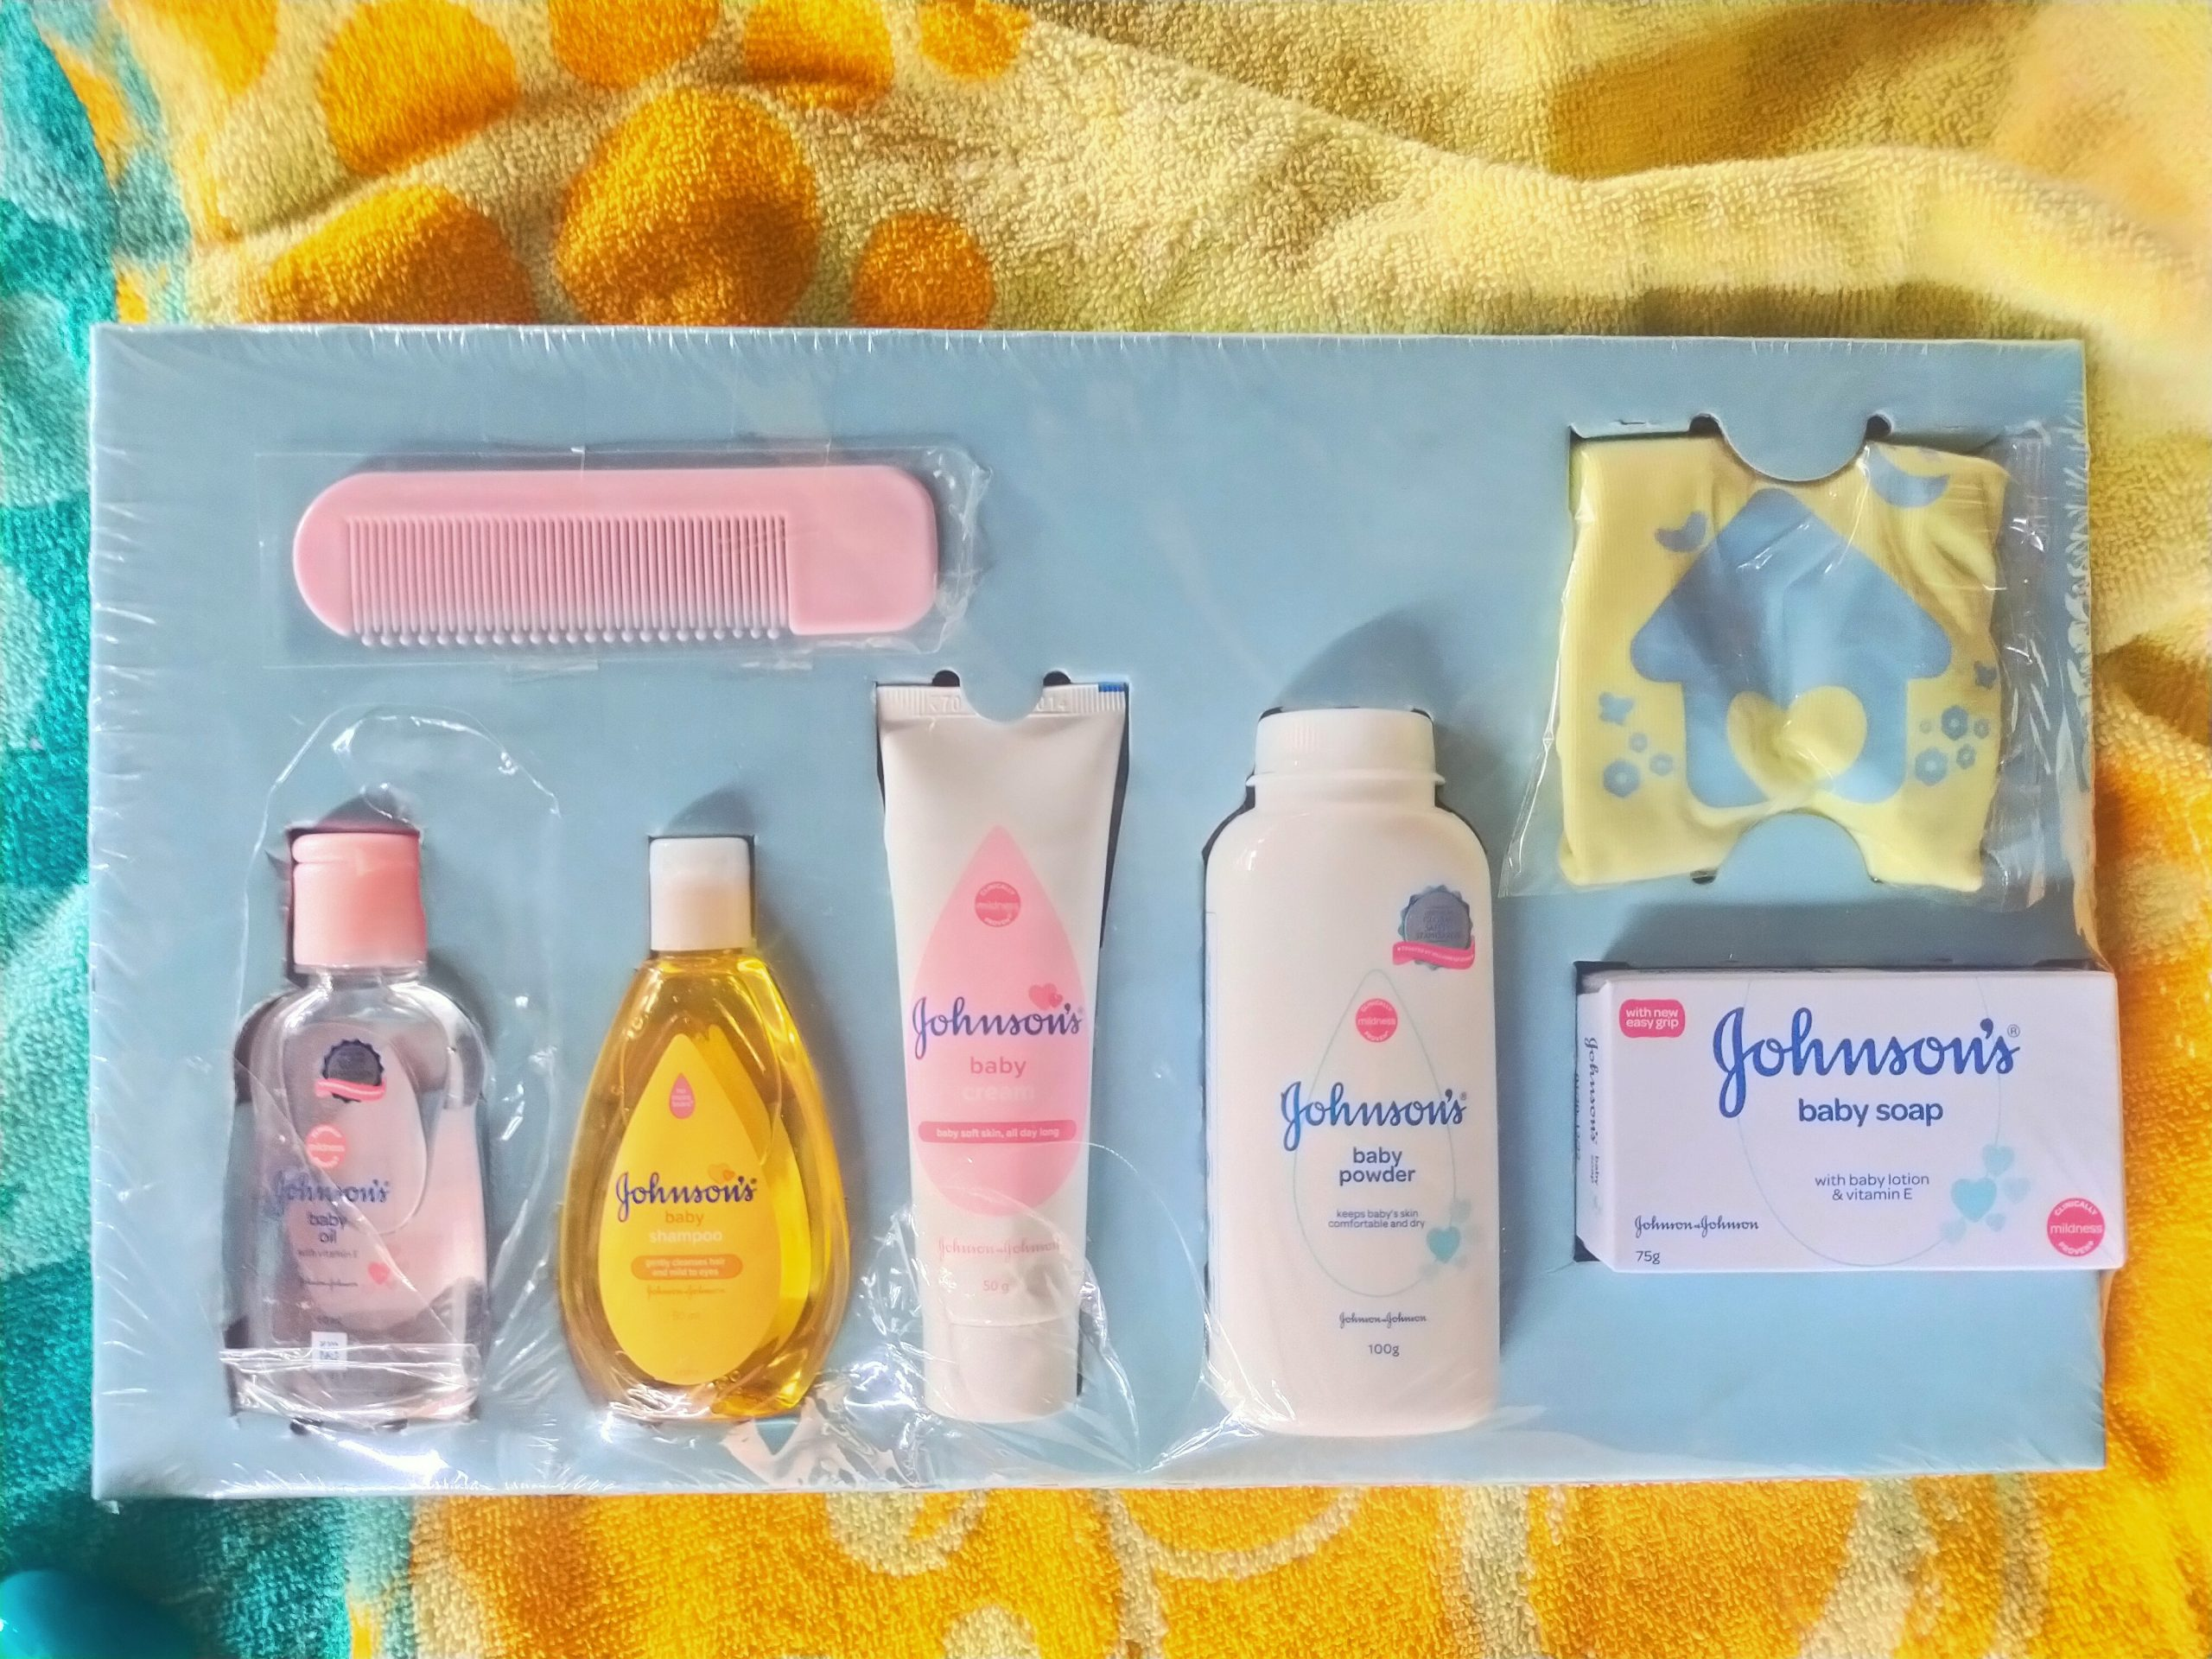 A baby product kit